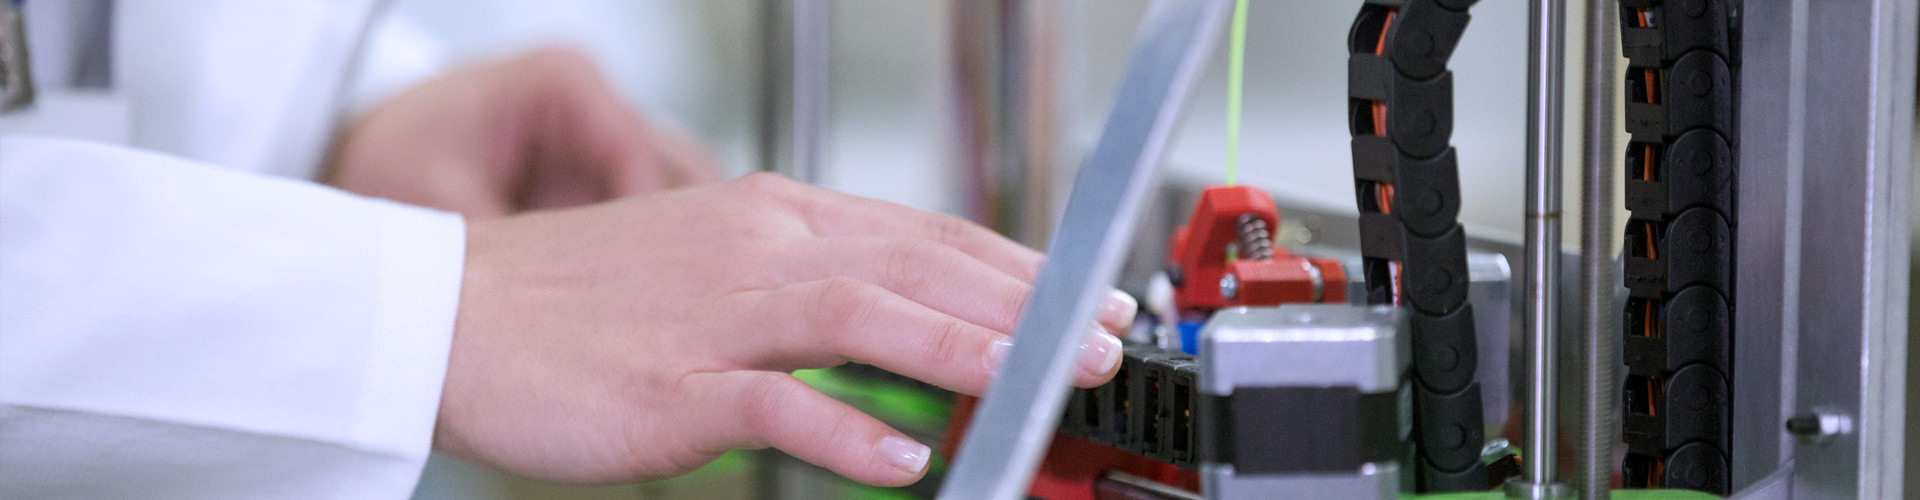 Smart Industry: Process optimization, efficiency improvement and cost reduction